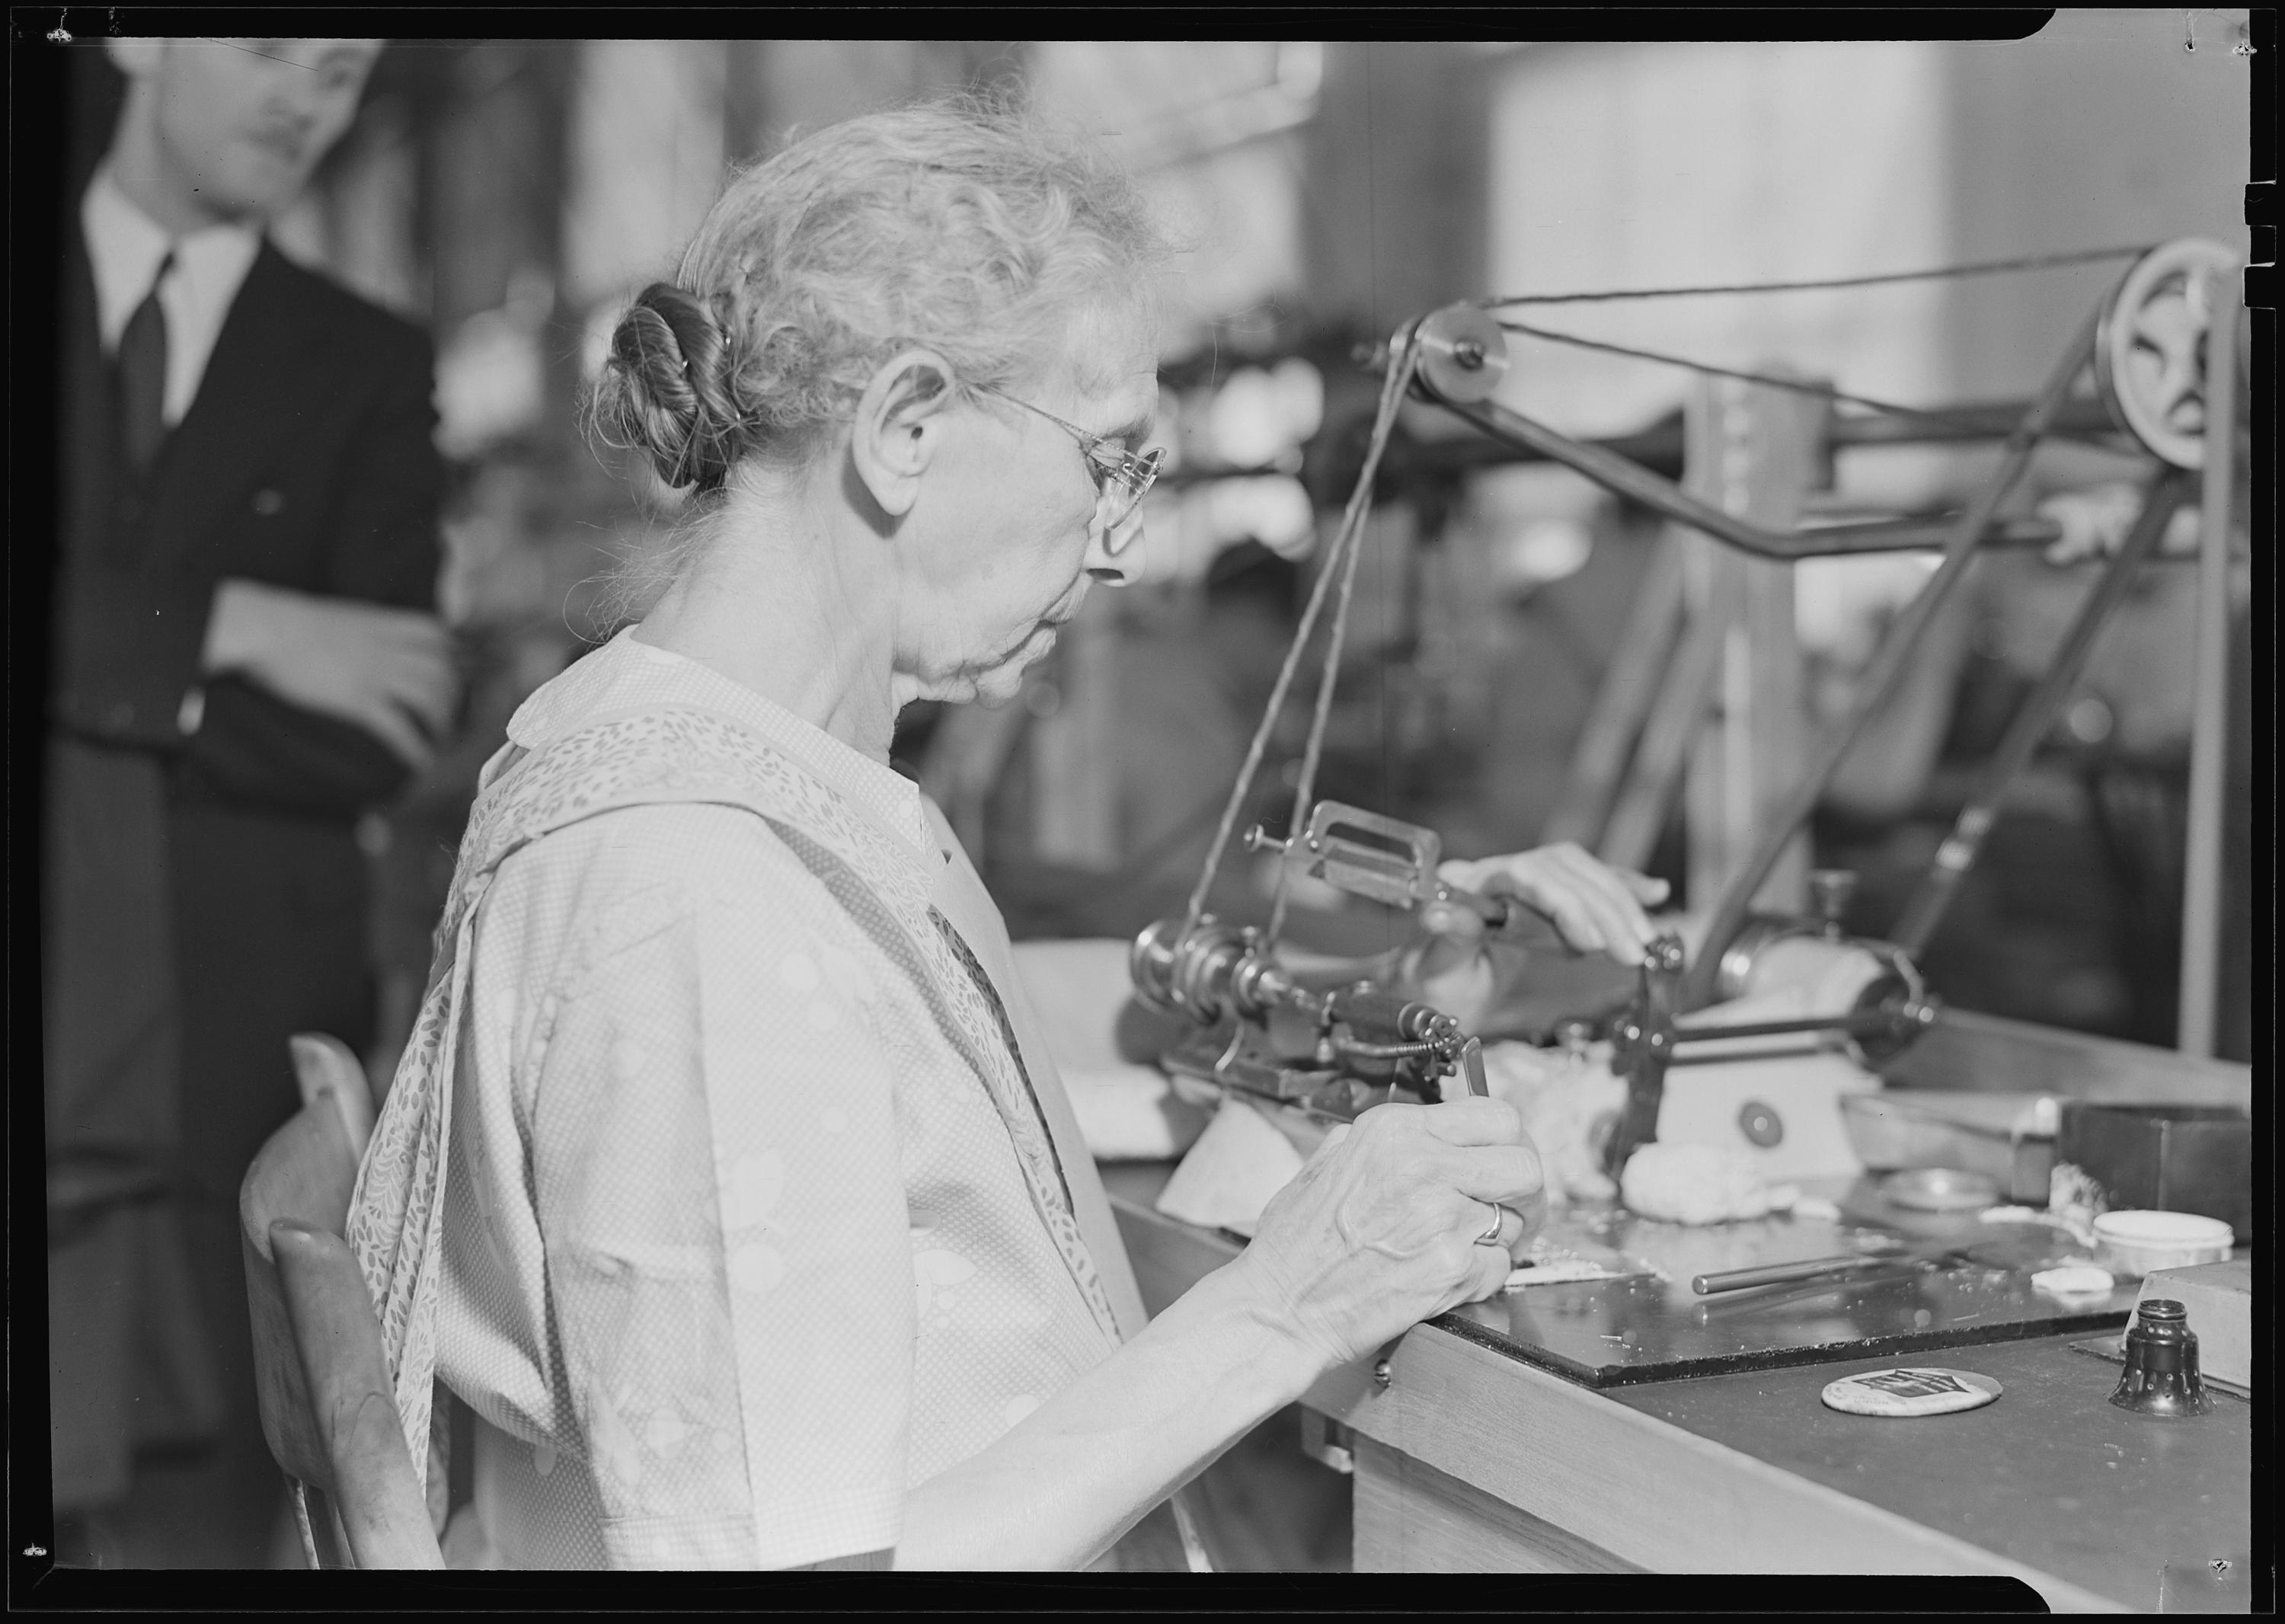 Hamilton Watch. Operation - polishing machine - machine is called wig-wag machine and is used to polish pivots and staff shoulders - semi-skilled operation, 1936